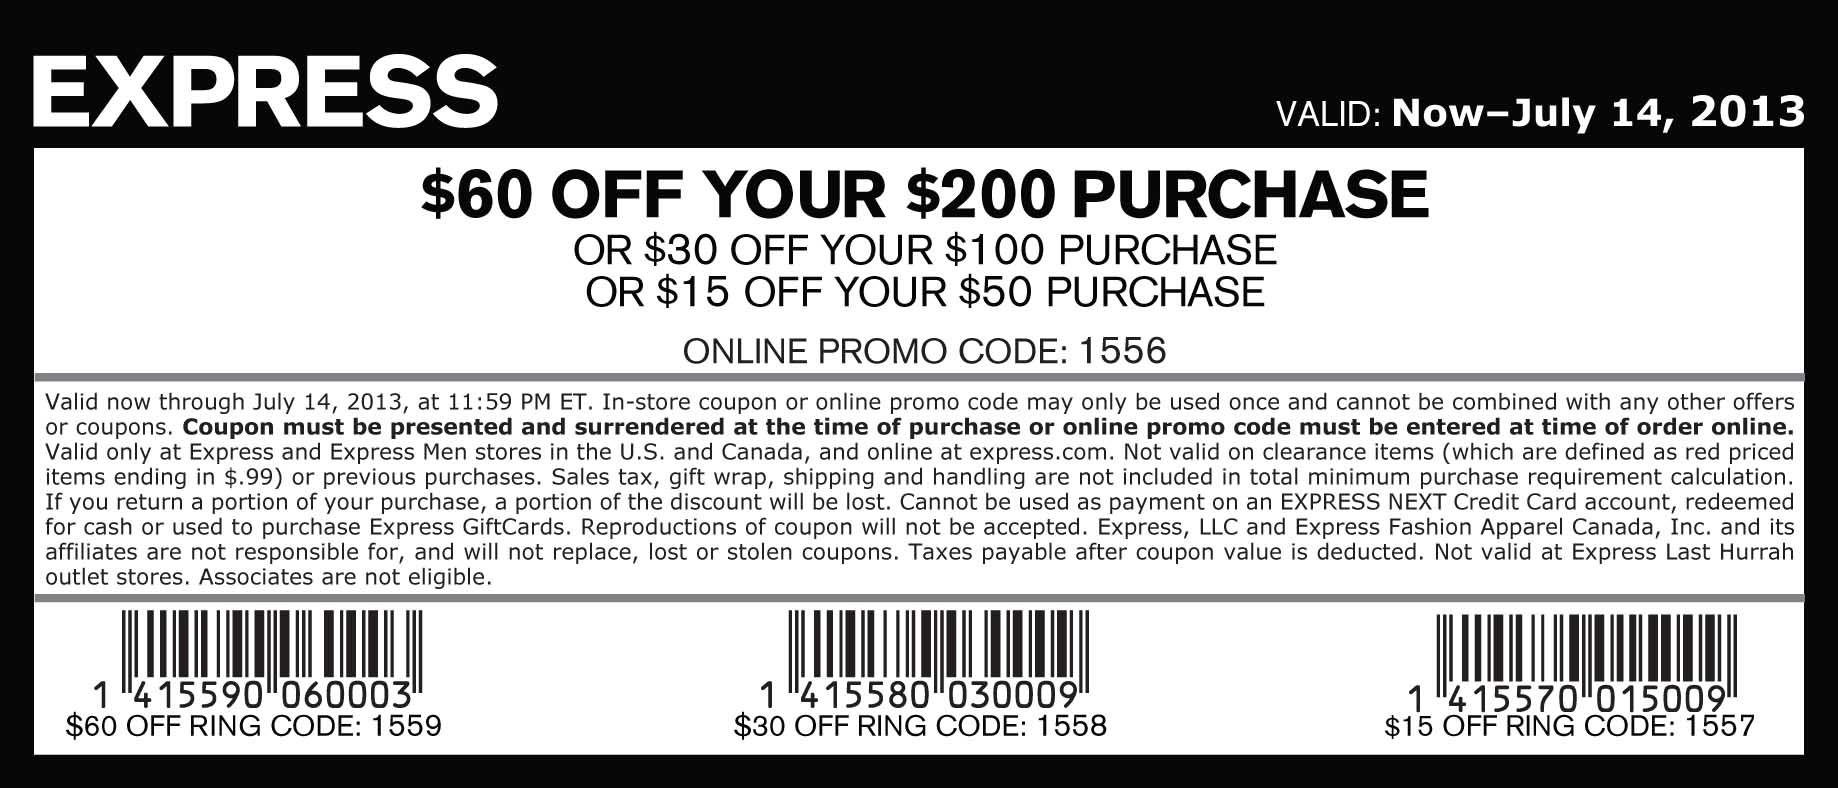 Bonanza coupon code 2018